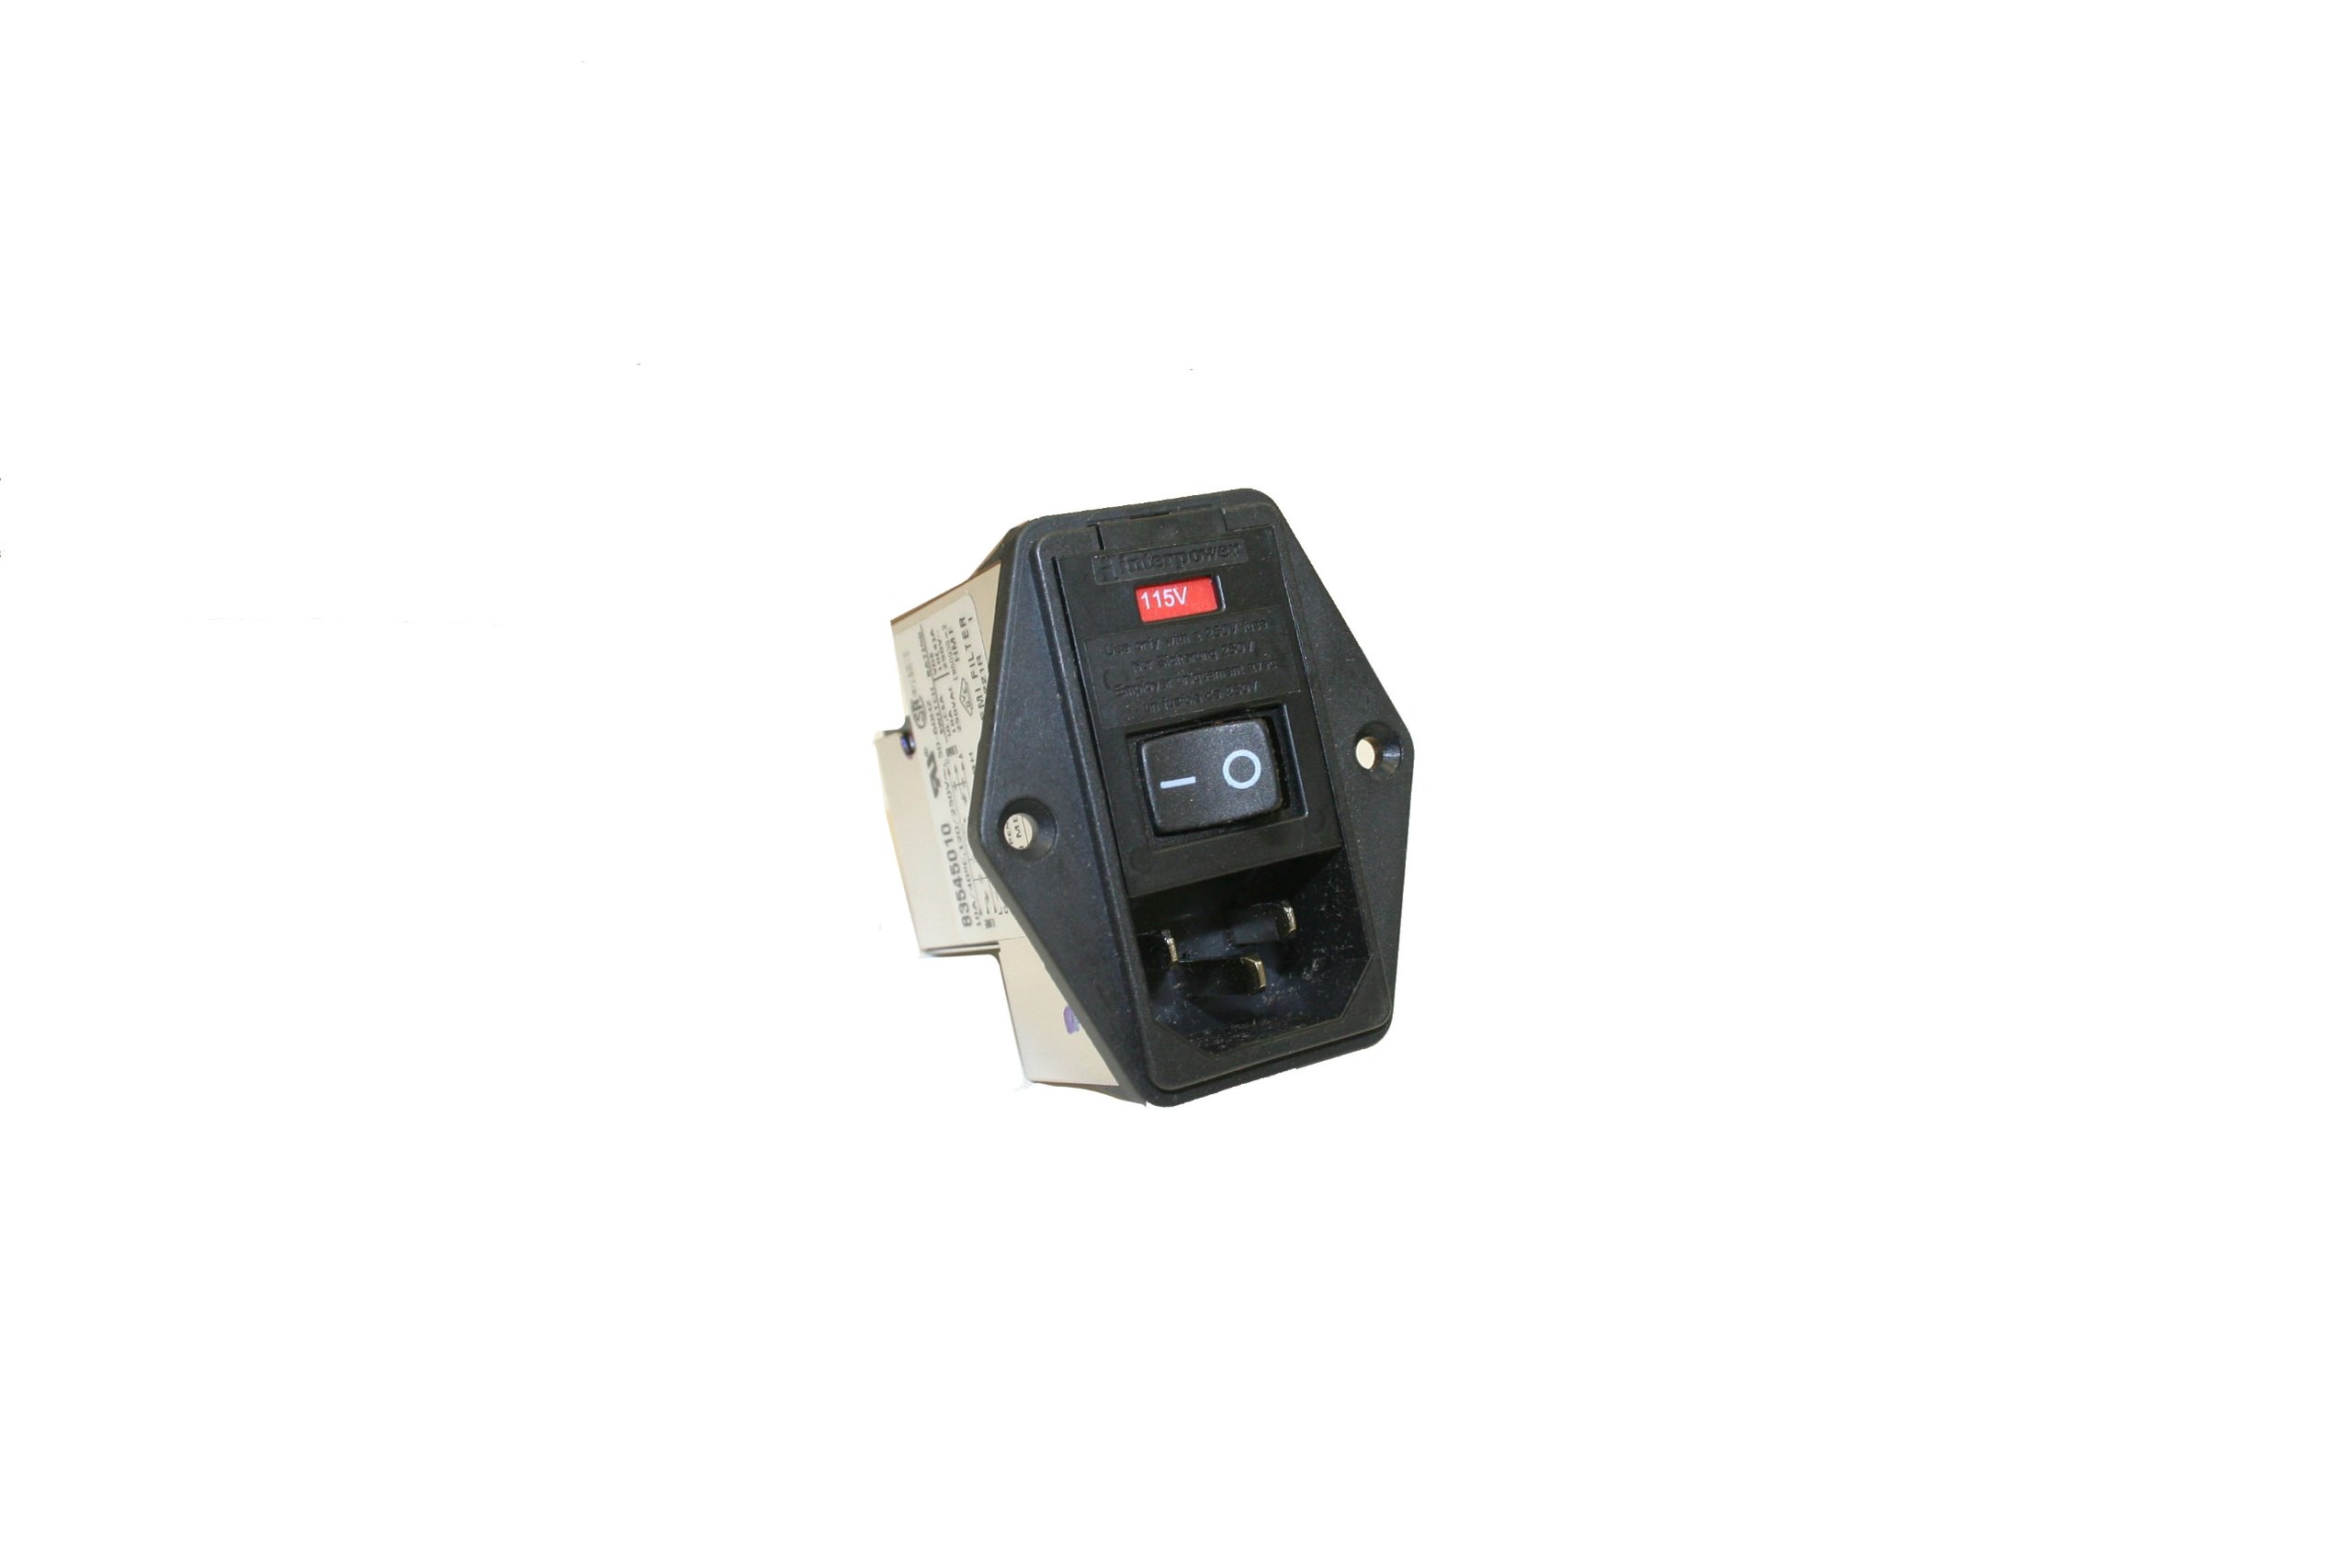 Interpower 83545010 Five Function Screw Mount Module, C14 Inlet, Switch, Double Fused, Voltage Selector, Filter, 10A Current Rating, 120/250VAC Voltage Rating